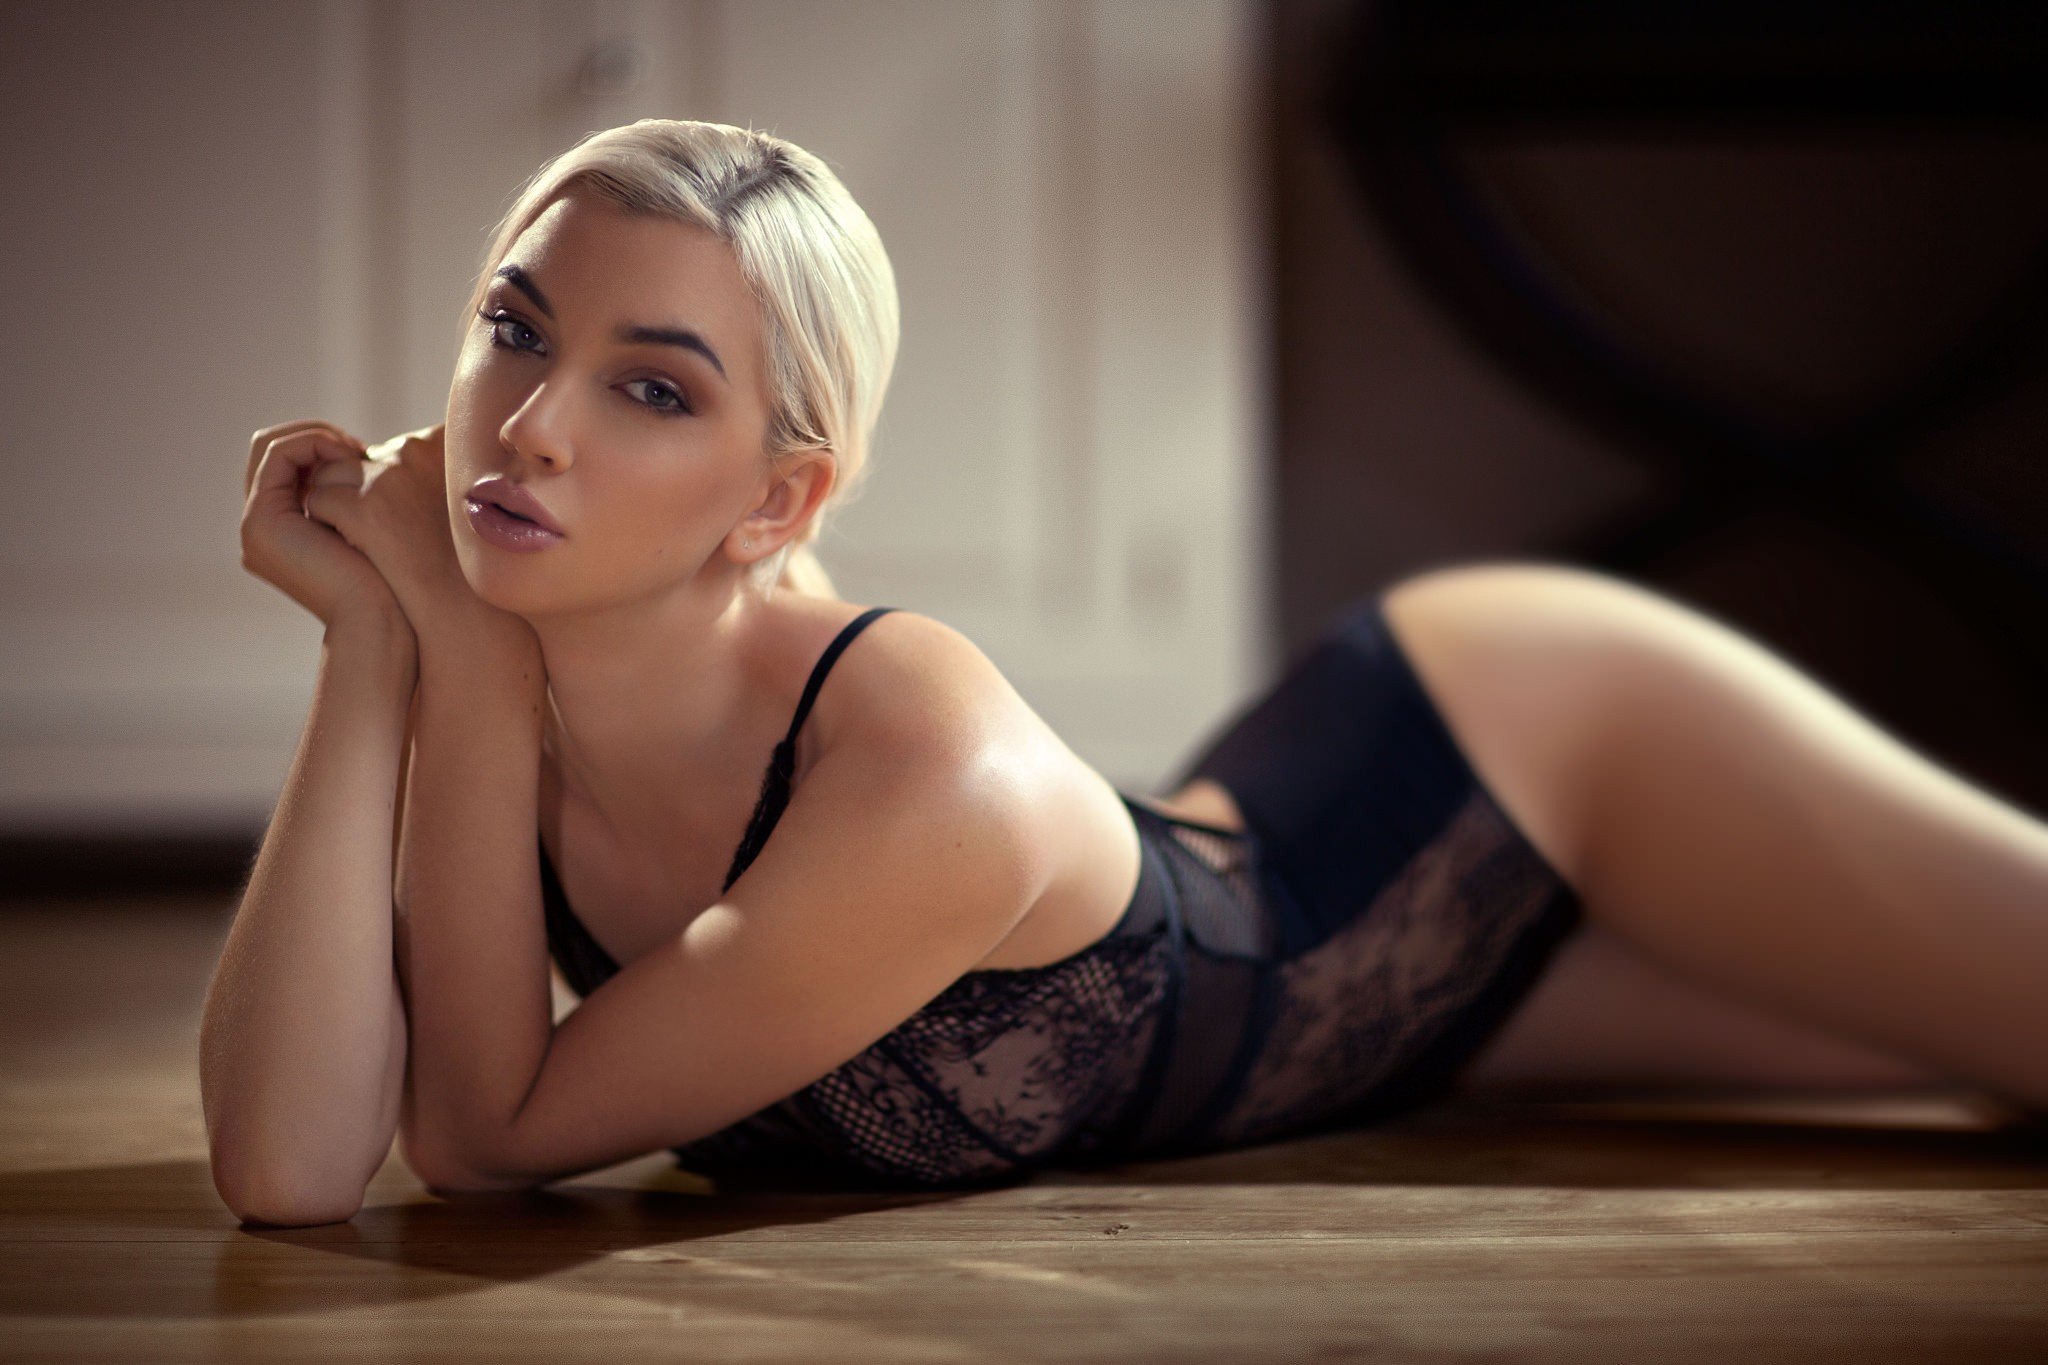 hot girl in sexy lingerie